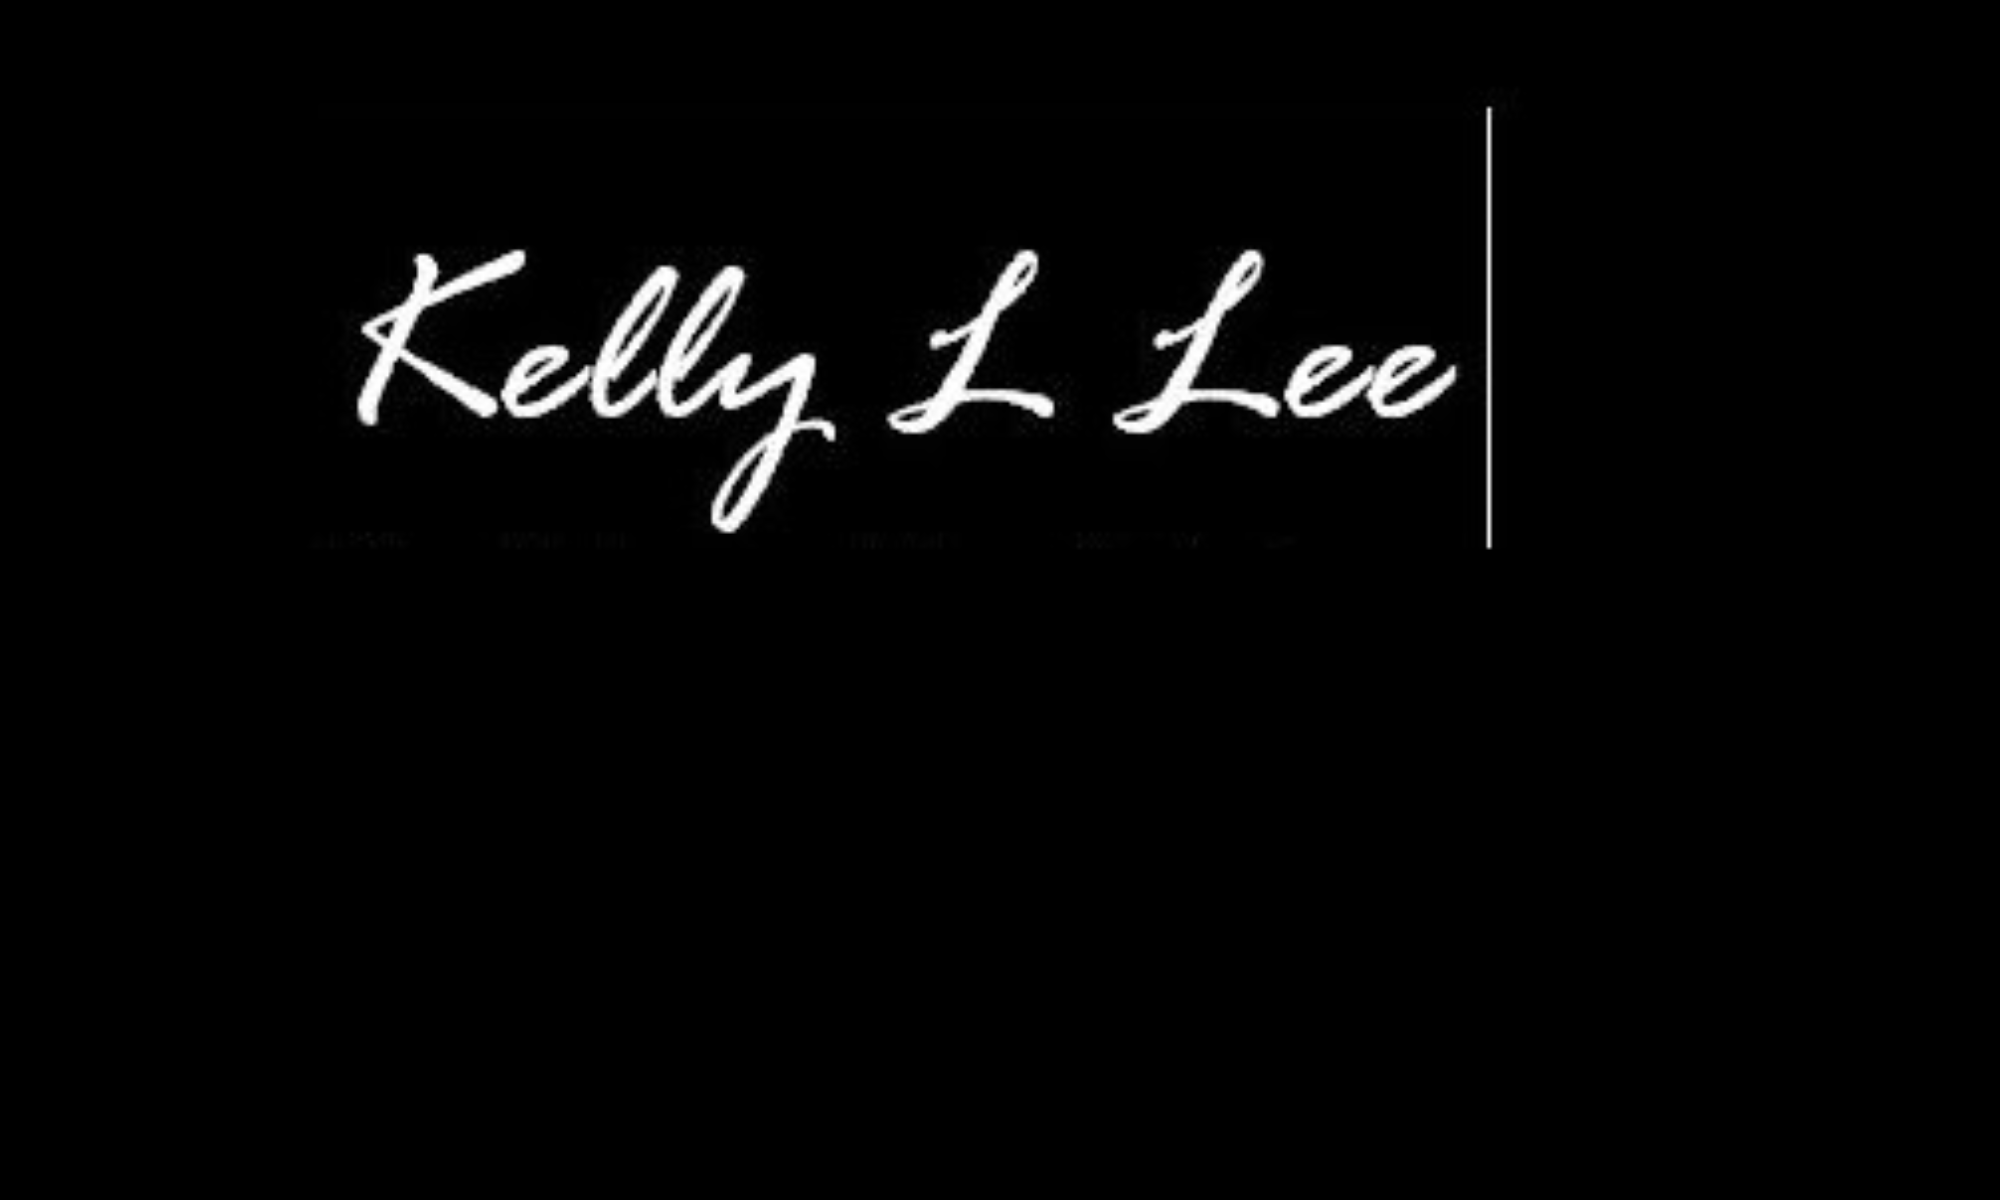 Kelly  L  Lee